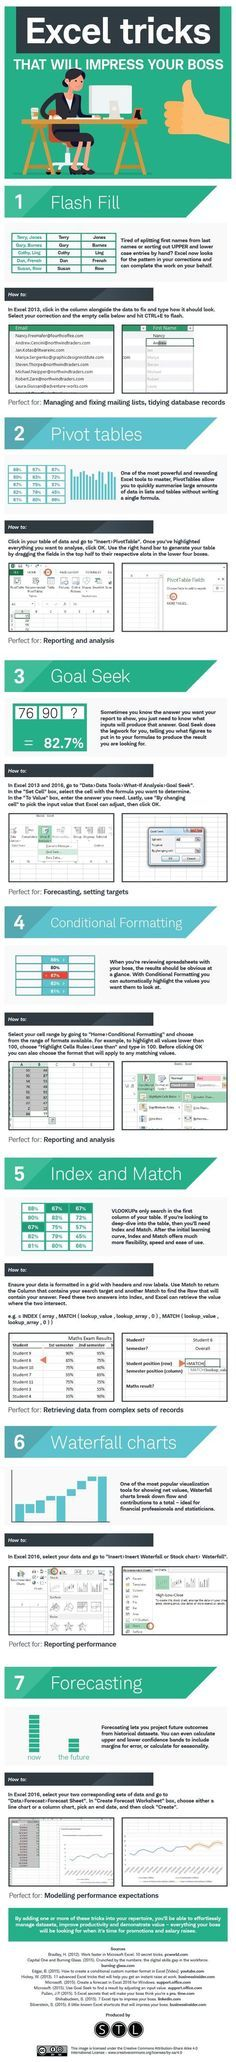 72 best mz excel images on Pinterest Computer tips, Microsoft - excel spreadsheet compare office 2016